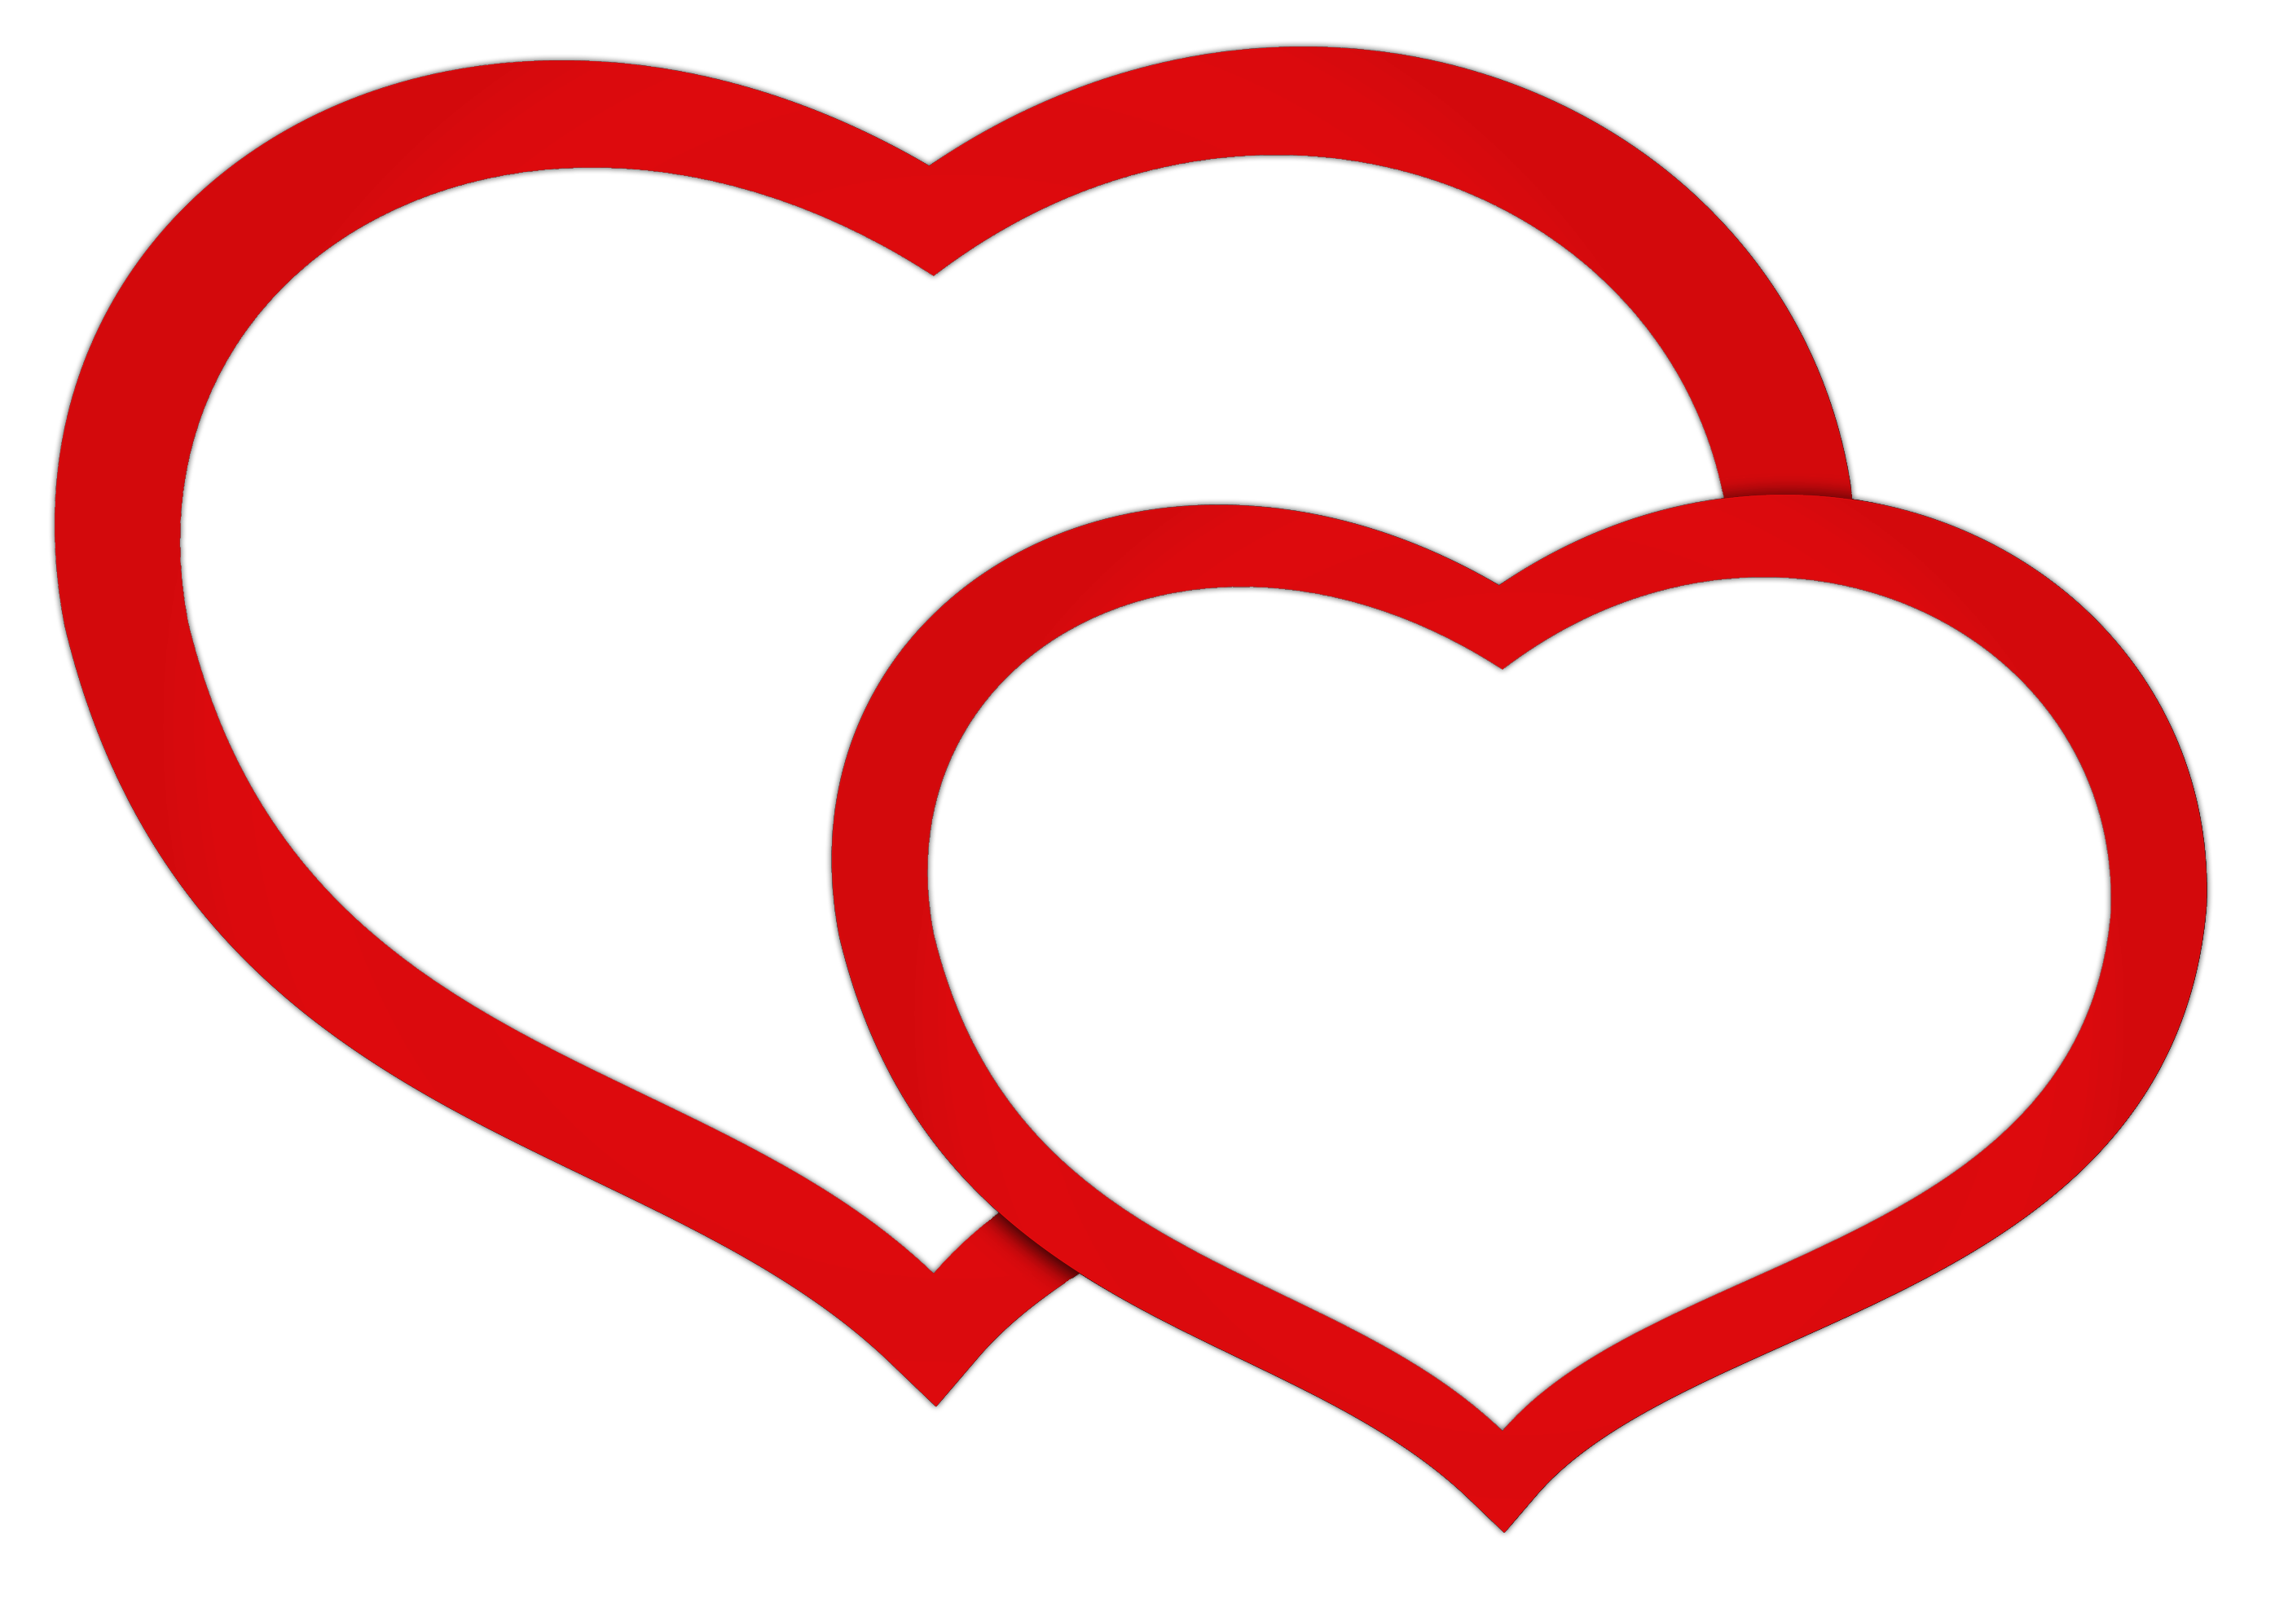 Two heart png. Free double hearts pictures